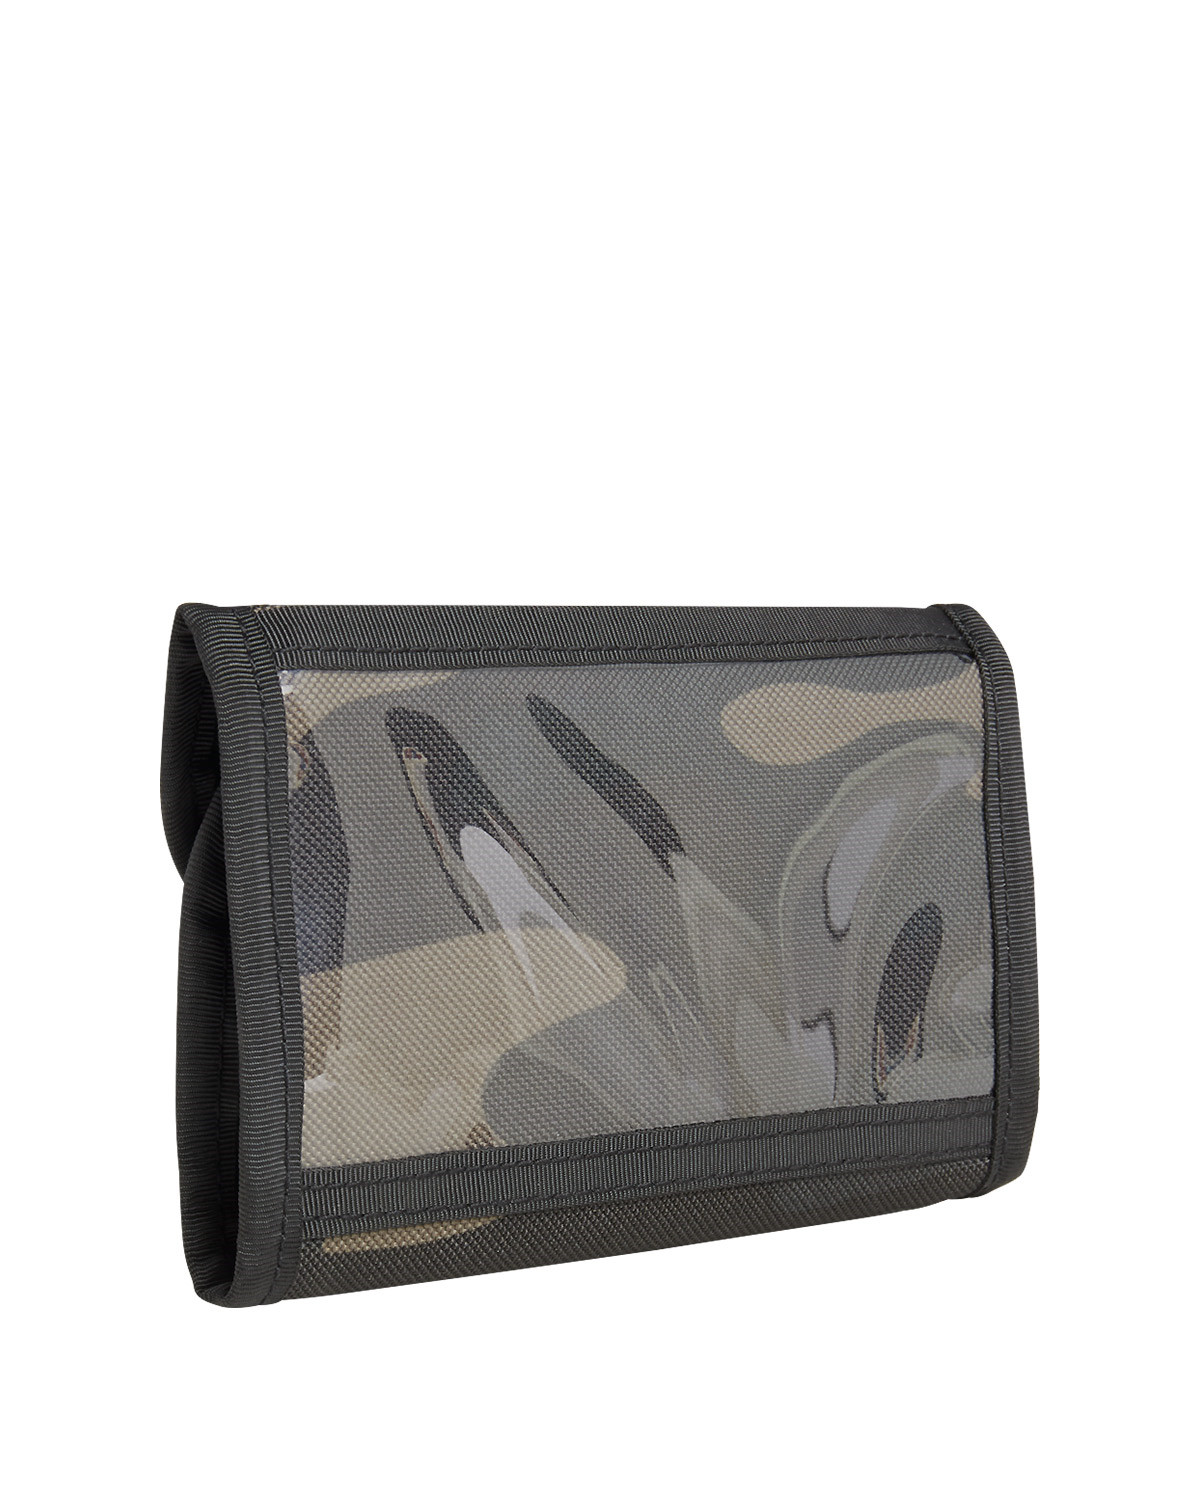 Image of   Brandit Wallet Two (Dark Camo, One Size)